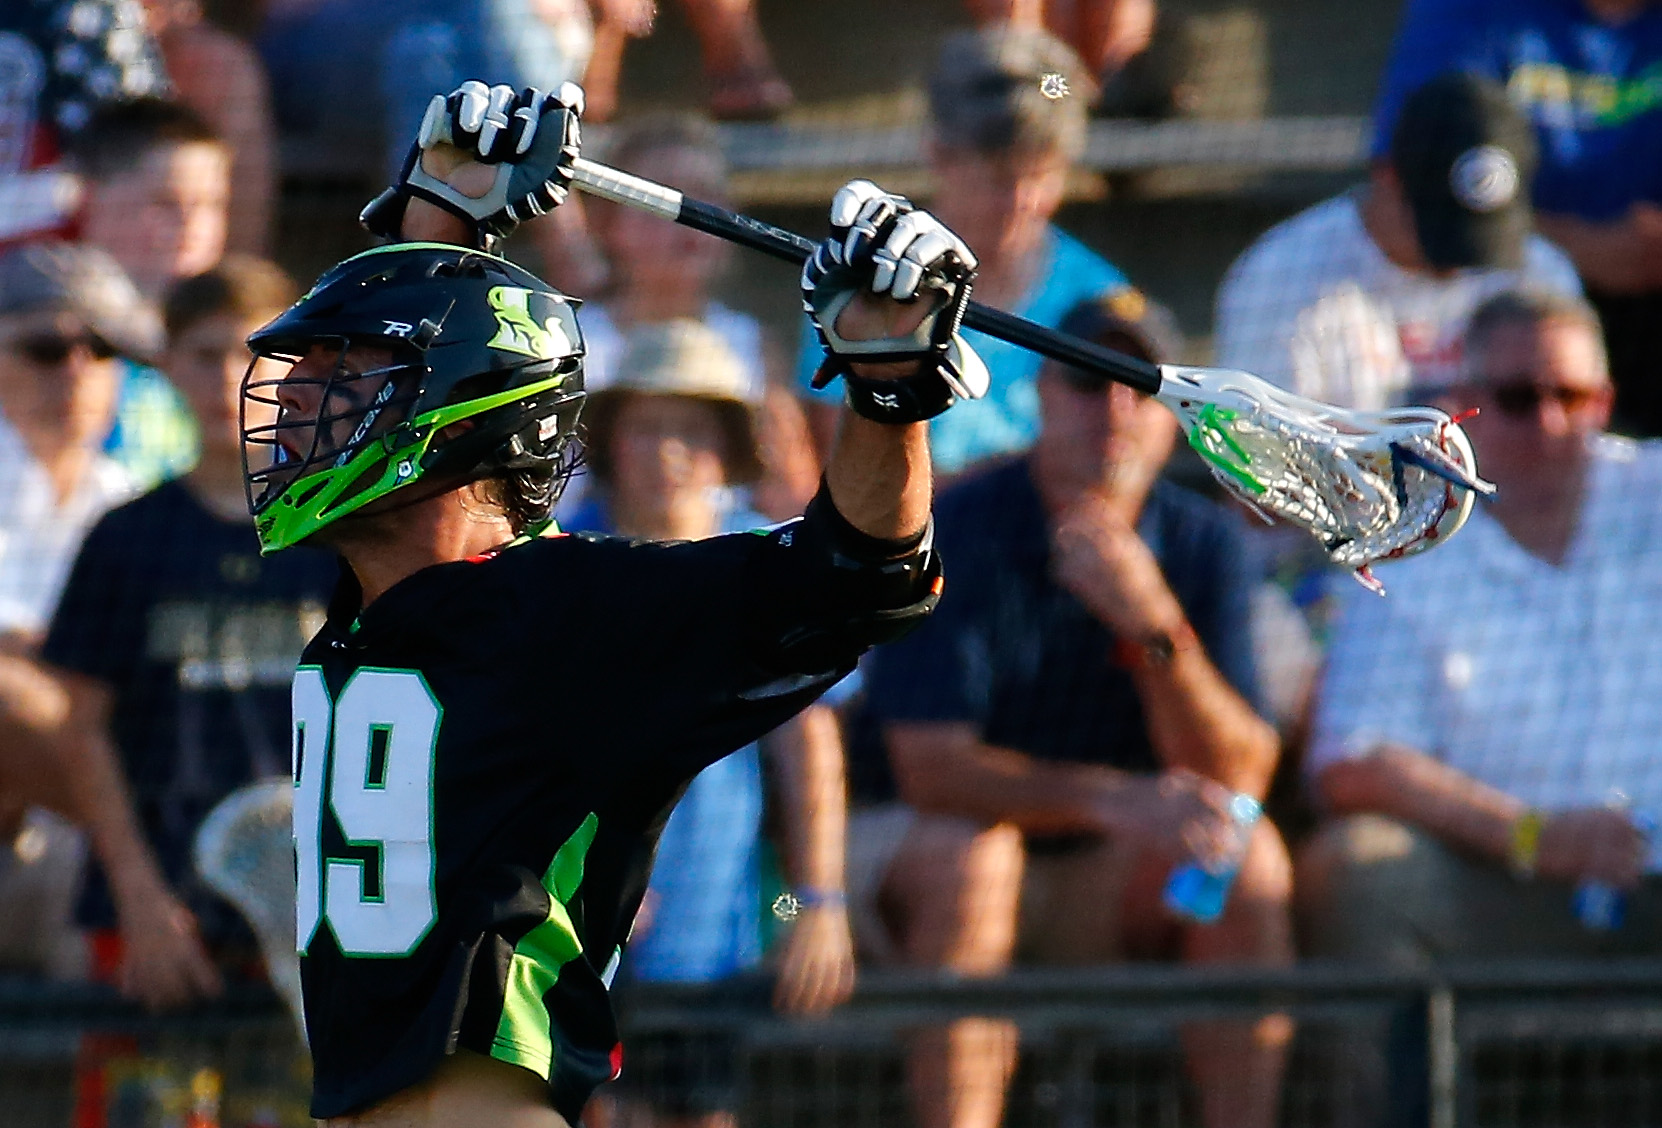 Professional lacrosse player Paul Rabil in 2015